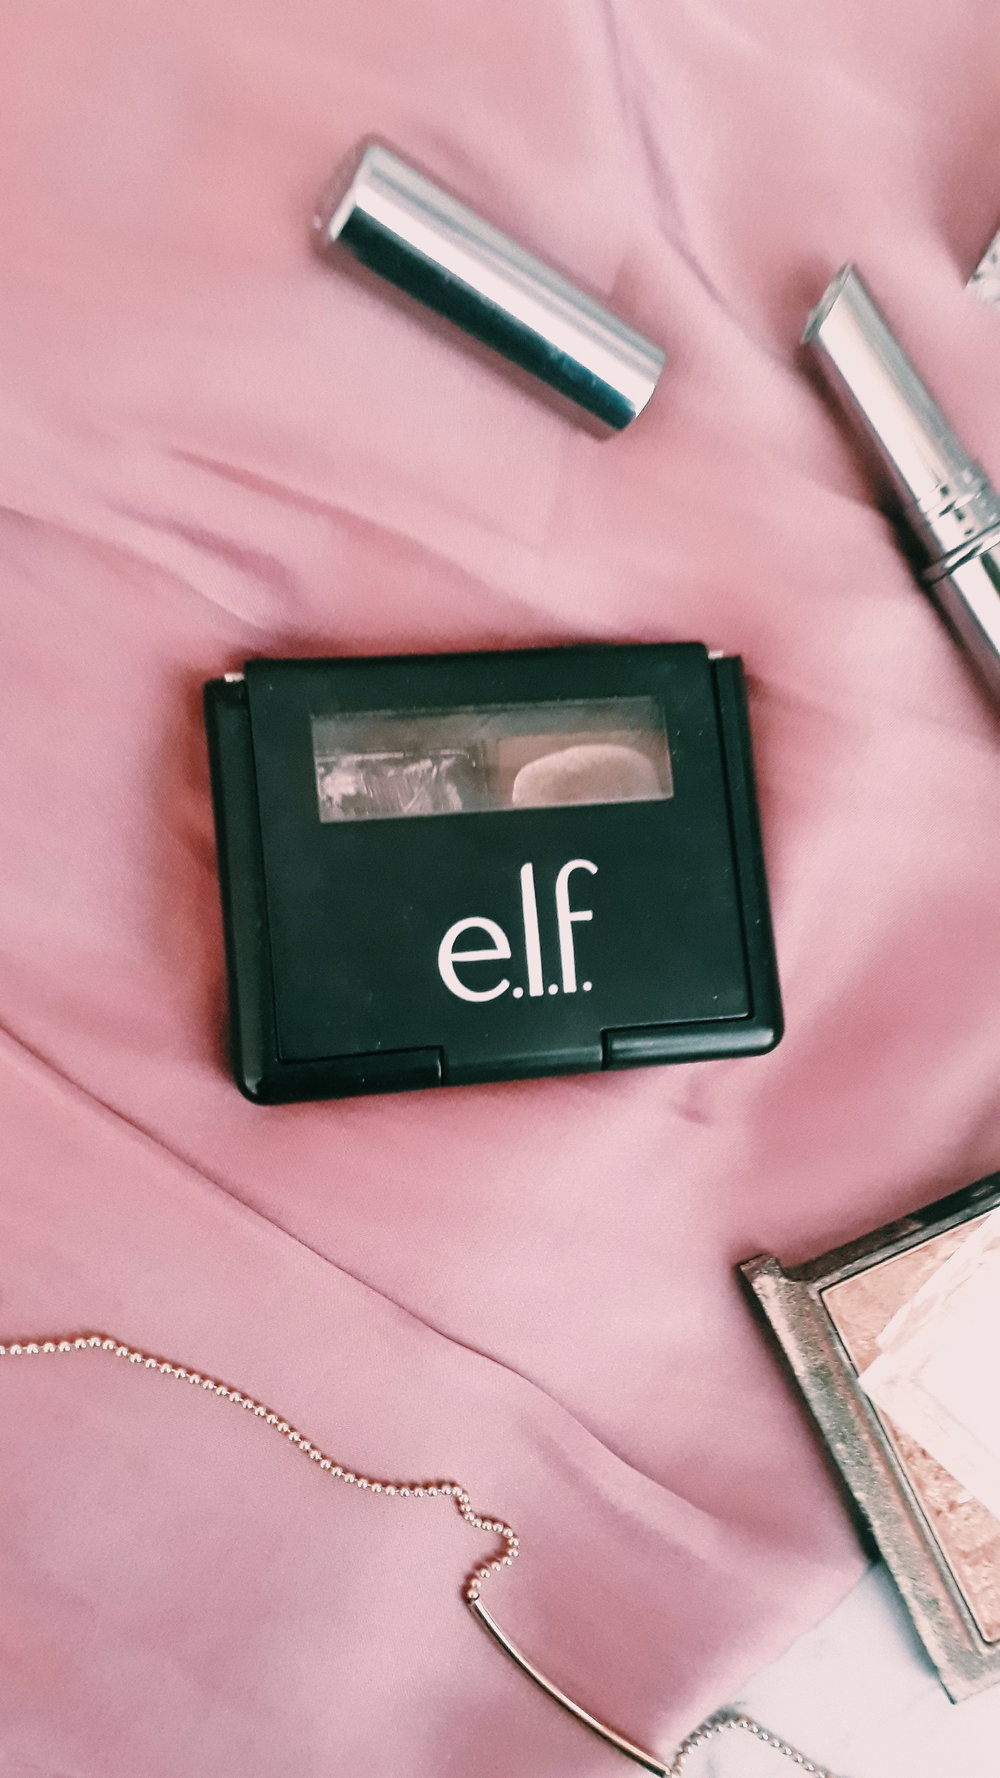 Elf Brow   Again defs a repurchase product. The most affordable yet amazing dip brow product I've found